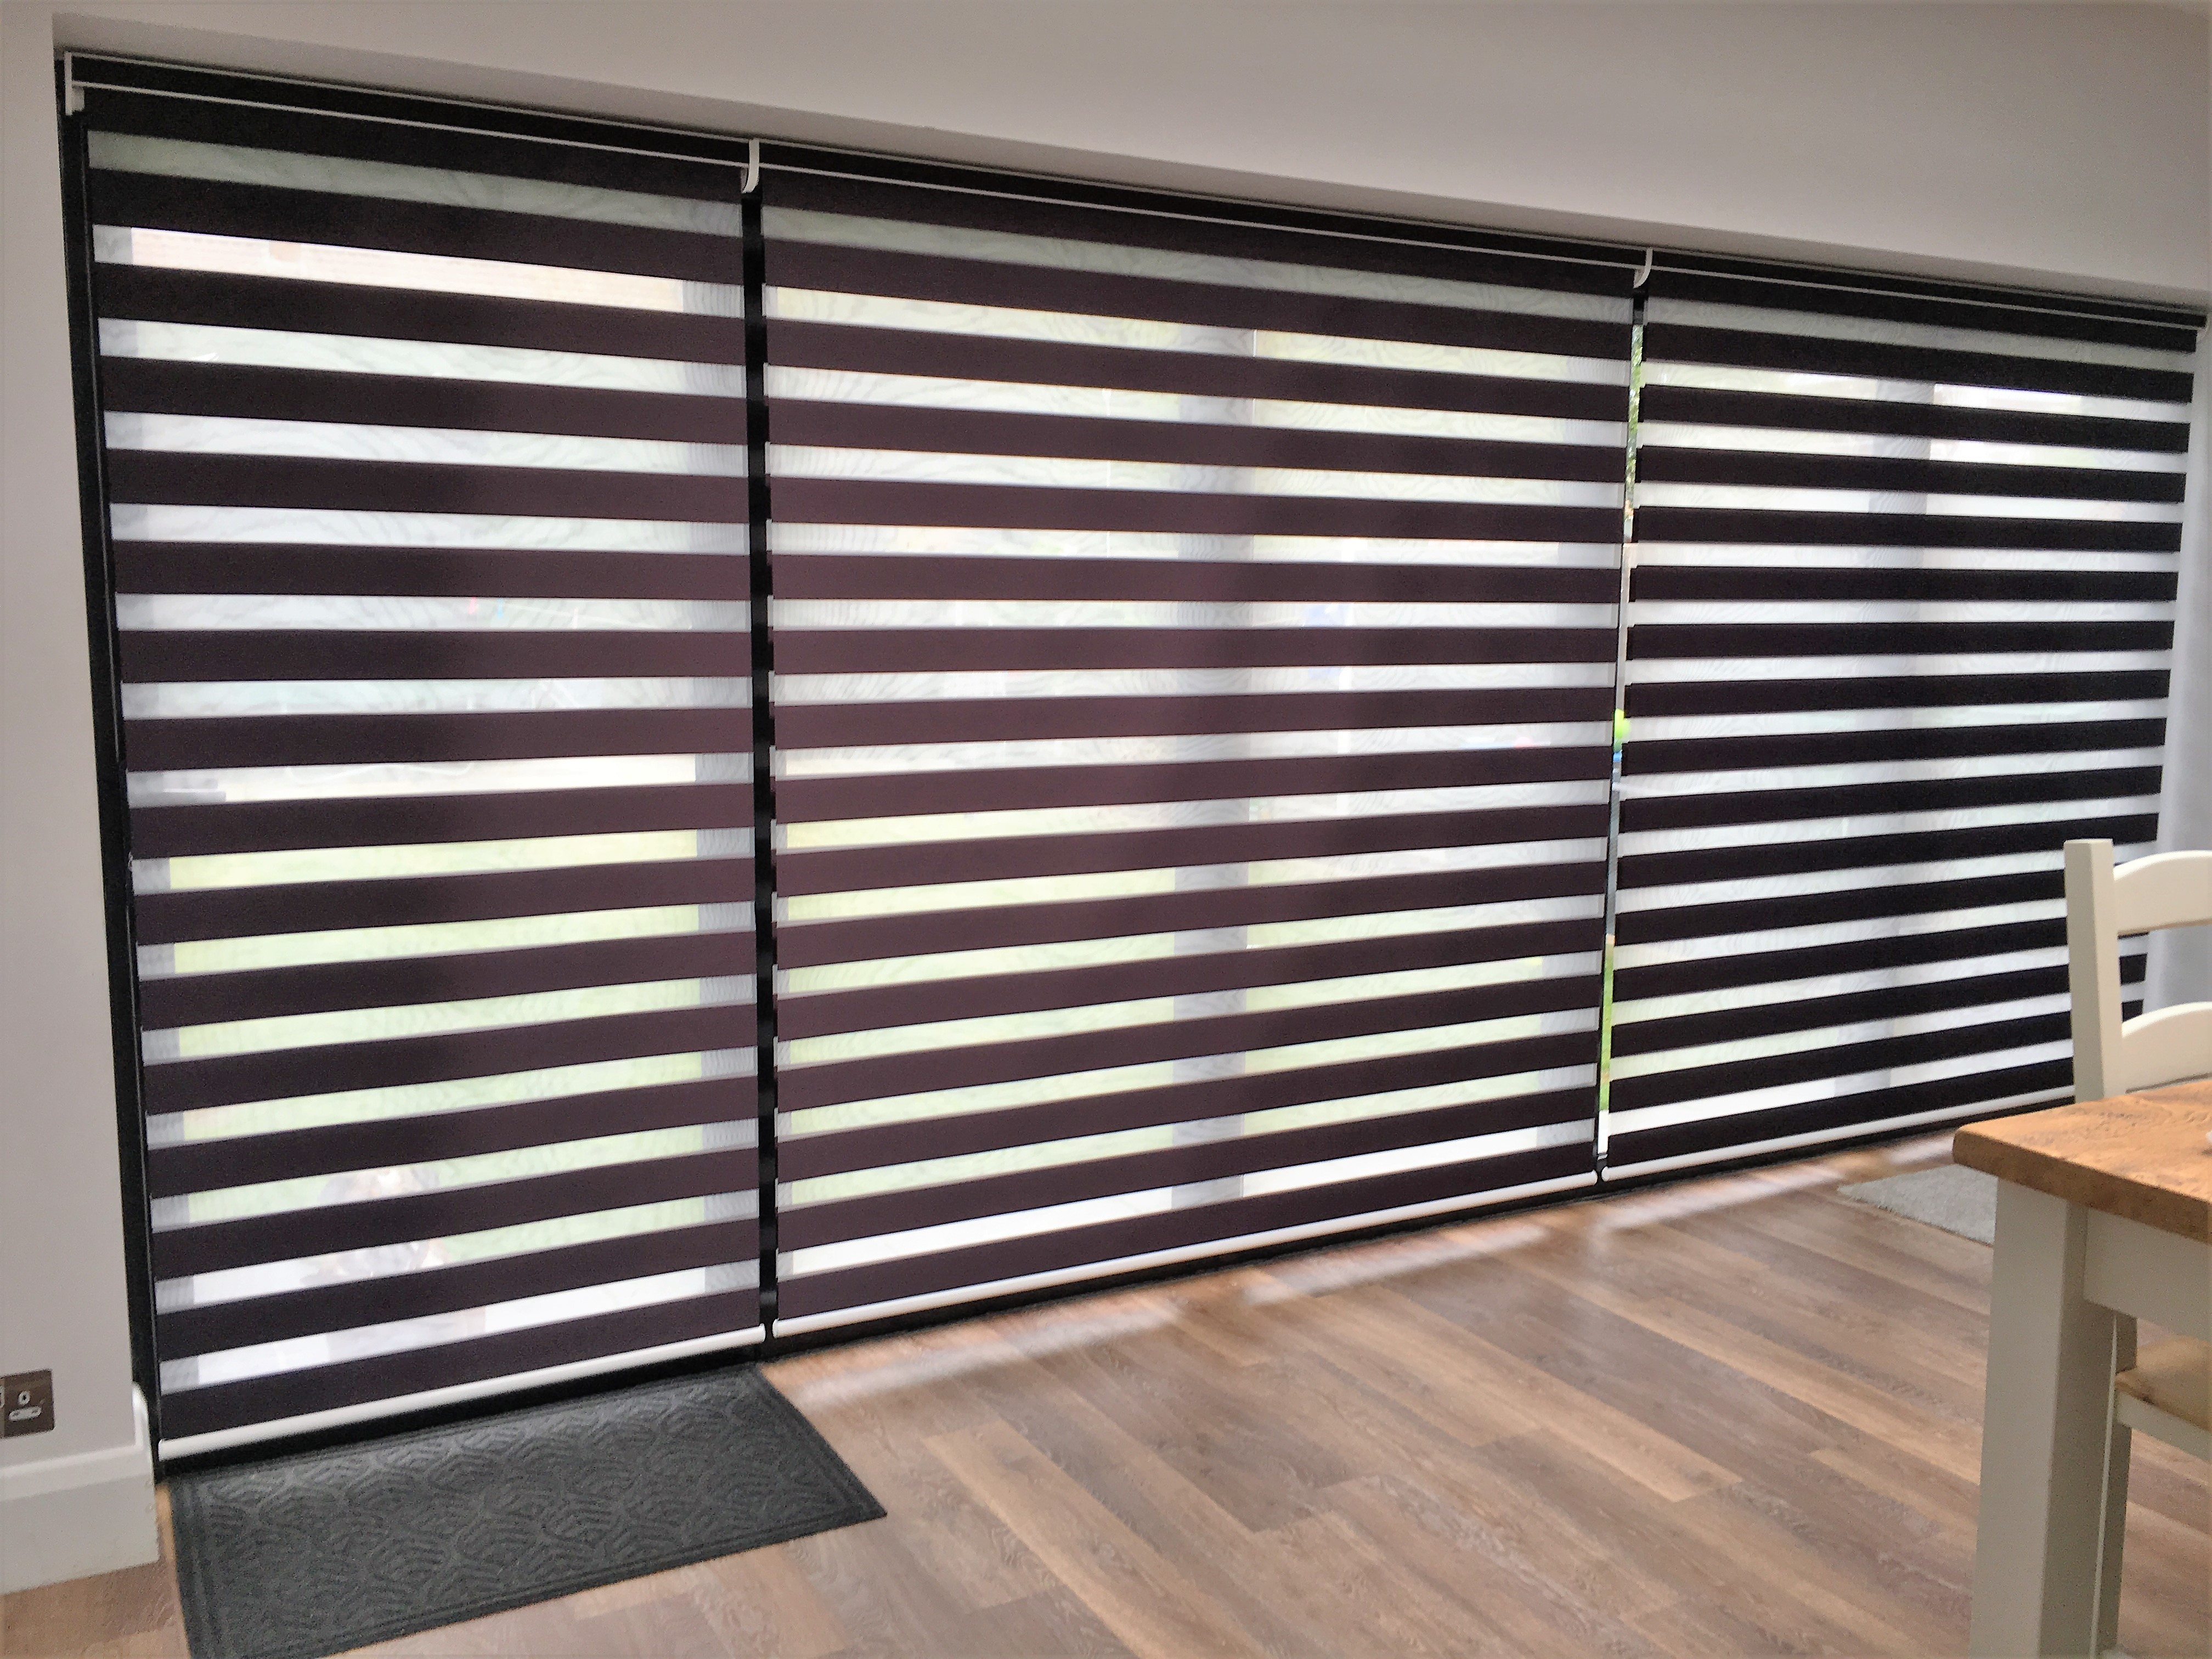 x reviews amazon same helpful shades w day blinds cut best rated basic in custom to winsharp white com size h customer pcr